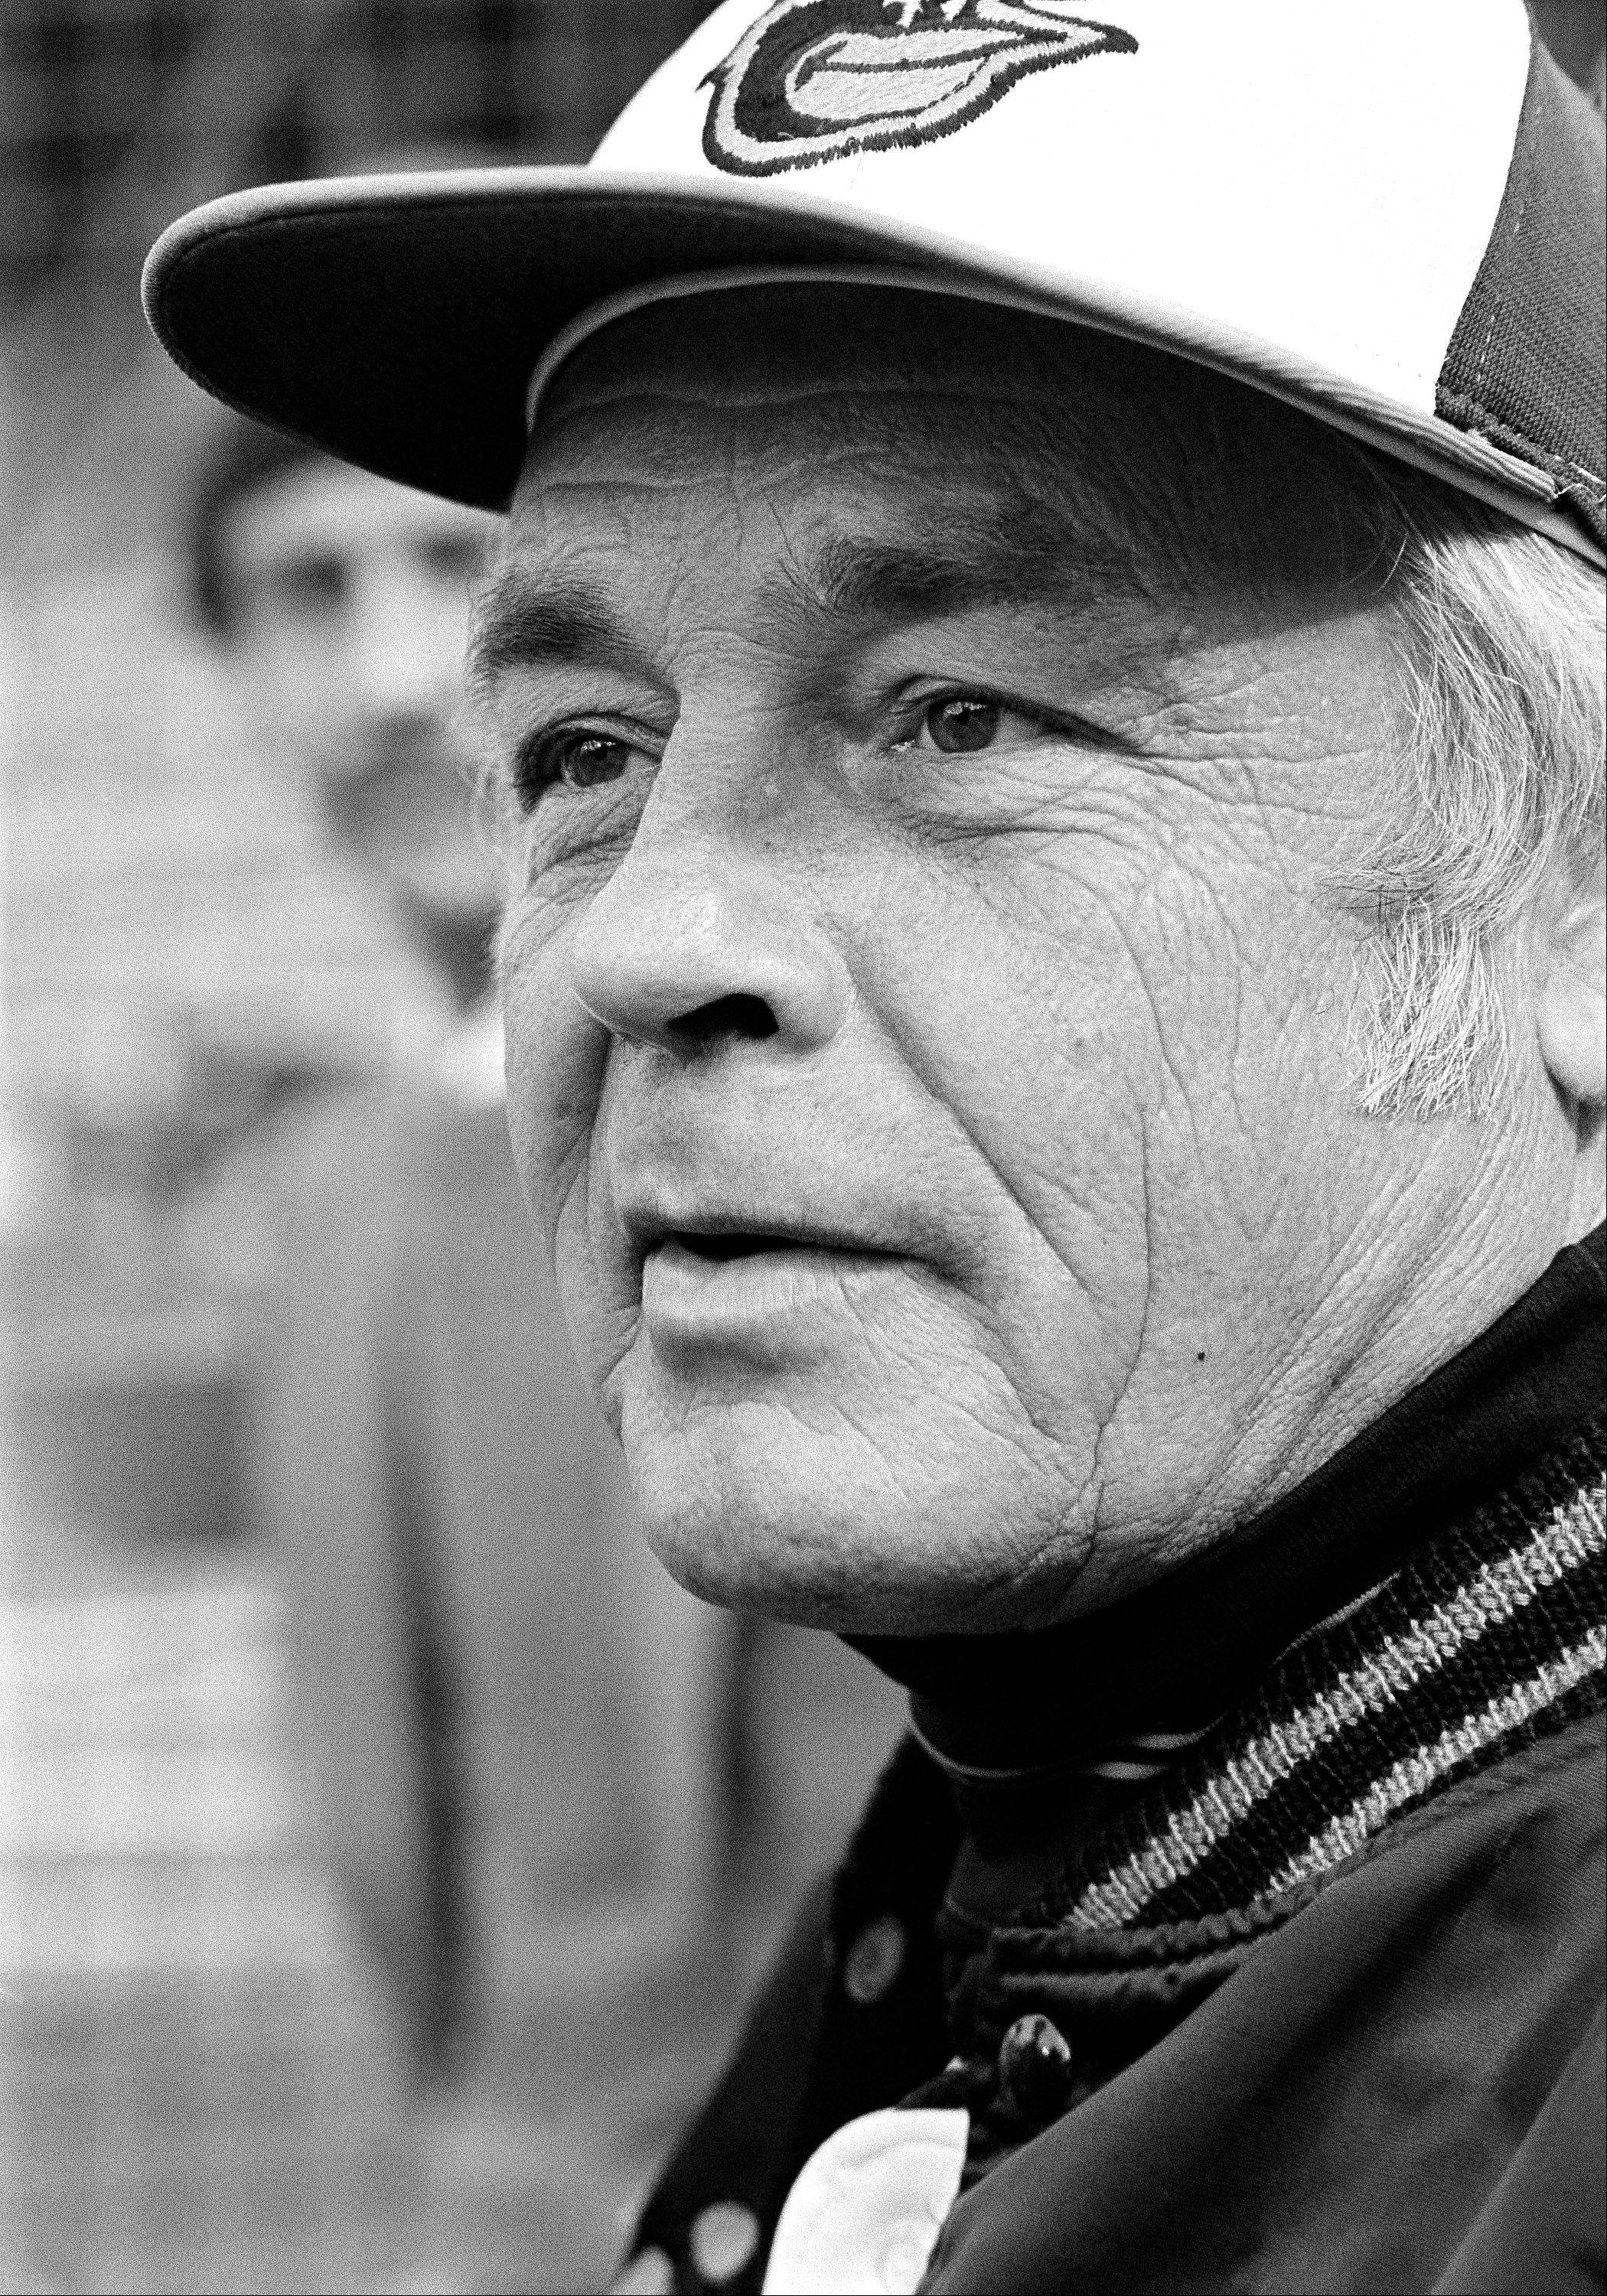 In this Wednesday, Oct. 11, 1979 file photo, manager Earl Weaver speaks to reporters outside the Baltimore Orioles' dugout just before the second game of World Series against Pittsburgh Pirates in Baltimore. Weaver, the Hall of Fame manager who won 1,480 games with the Baltimore Orioles died Jan. 19, 2013. He was 82.